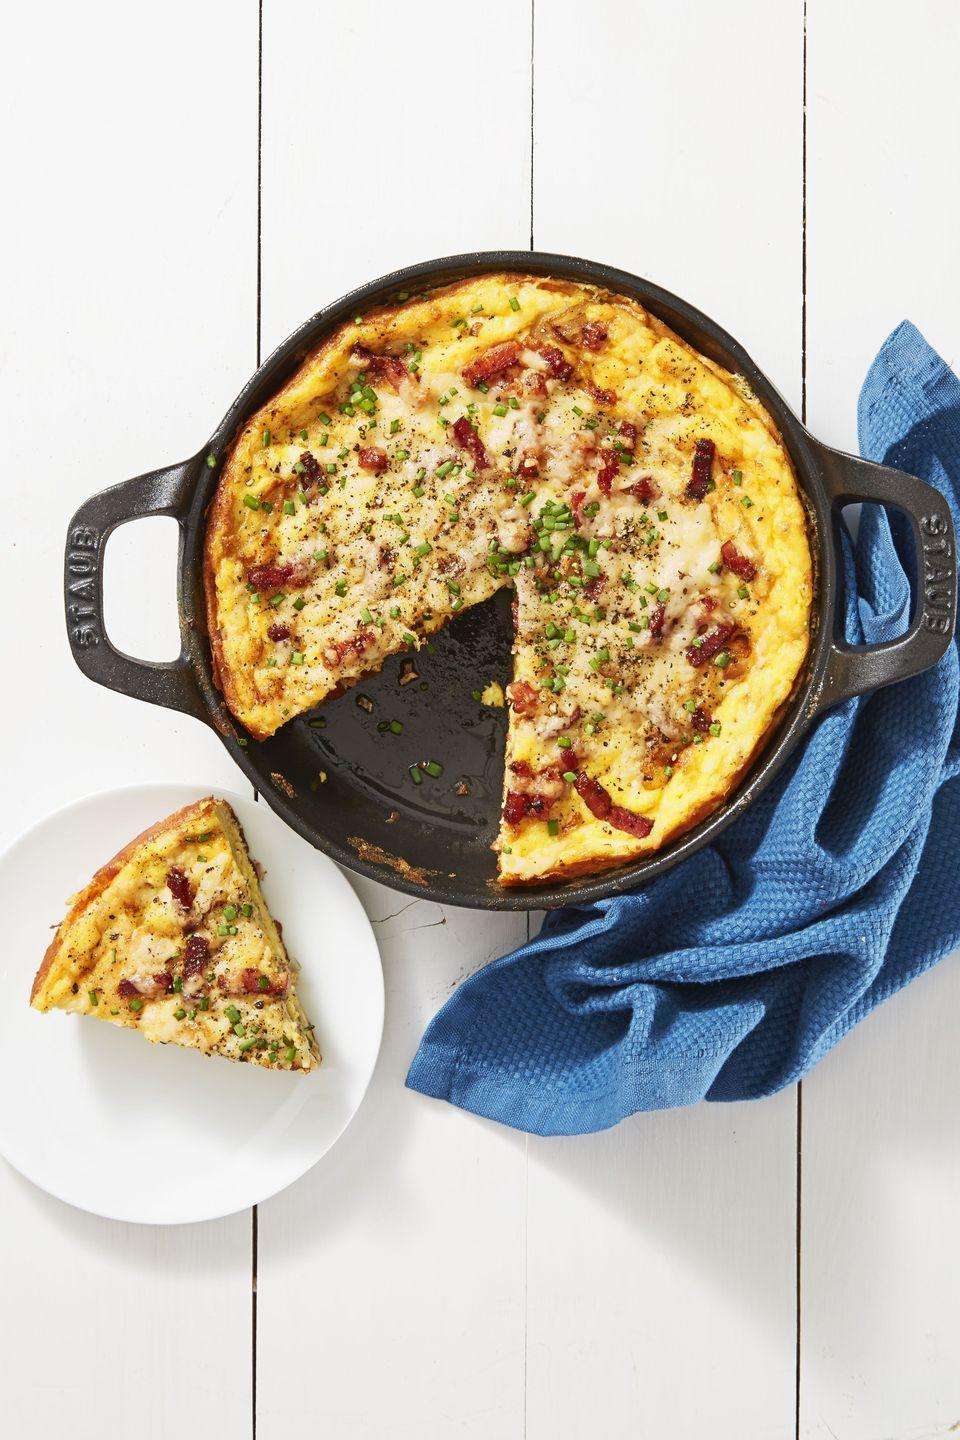 "<p>We ditched the crust for this low-carb skillet but don't worry — we kept the bacon.</p><p><em><a href=""https://www.goodhousekeeping.com/food-recipes/a39947/crustless-quiche-lorraine-recipe/"" rel=""nofollow noopener"" target=""_blank"" data-ylk=""slk:Get the recipe for Crustless Quiche Lorraine »"" class=""link rapid-noclick-resp"">Get the recipe for Crustless Quiche Lorraine »</a></em></p>"